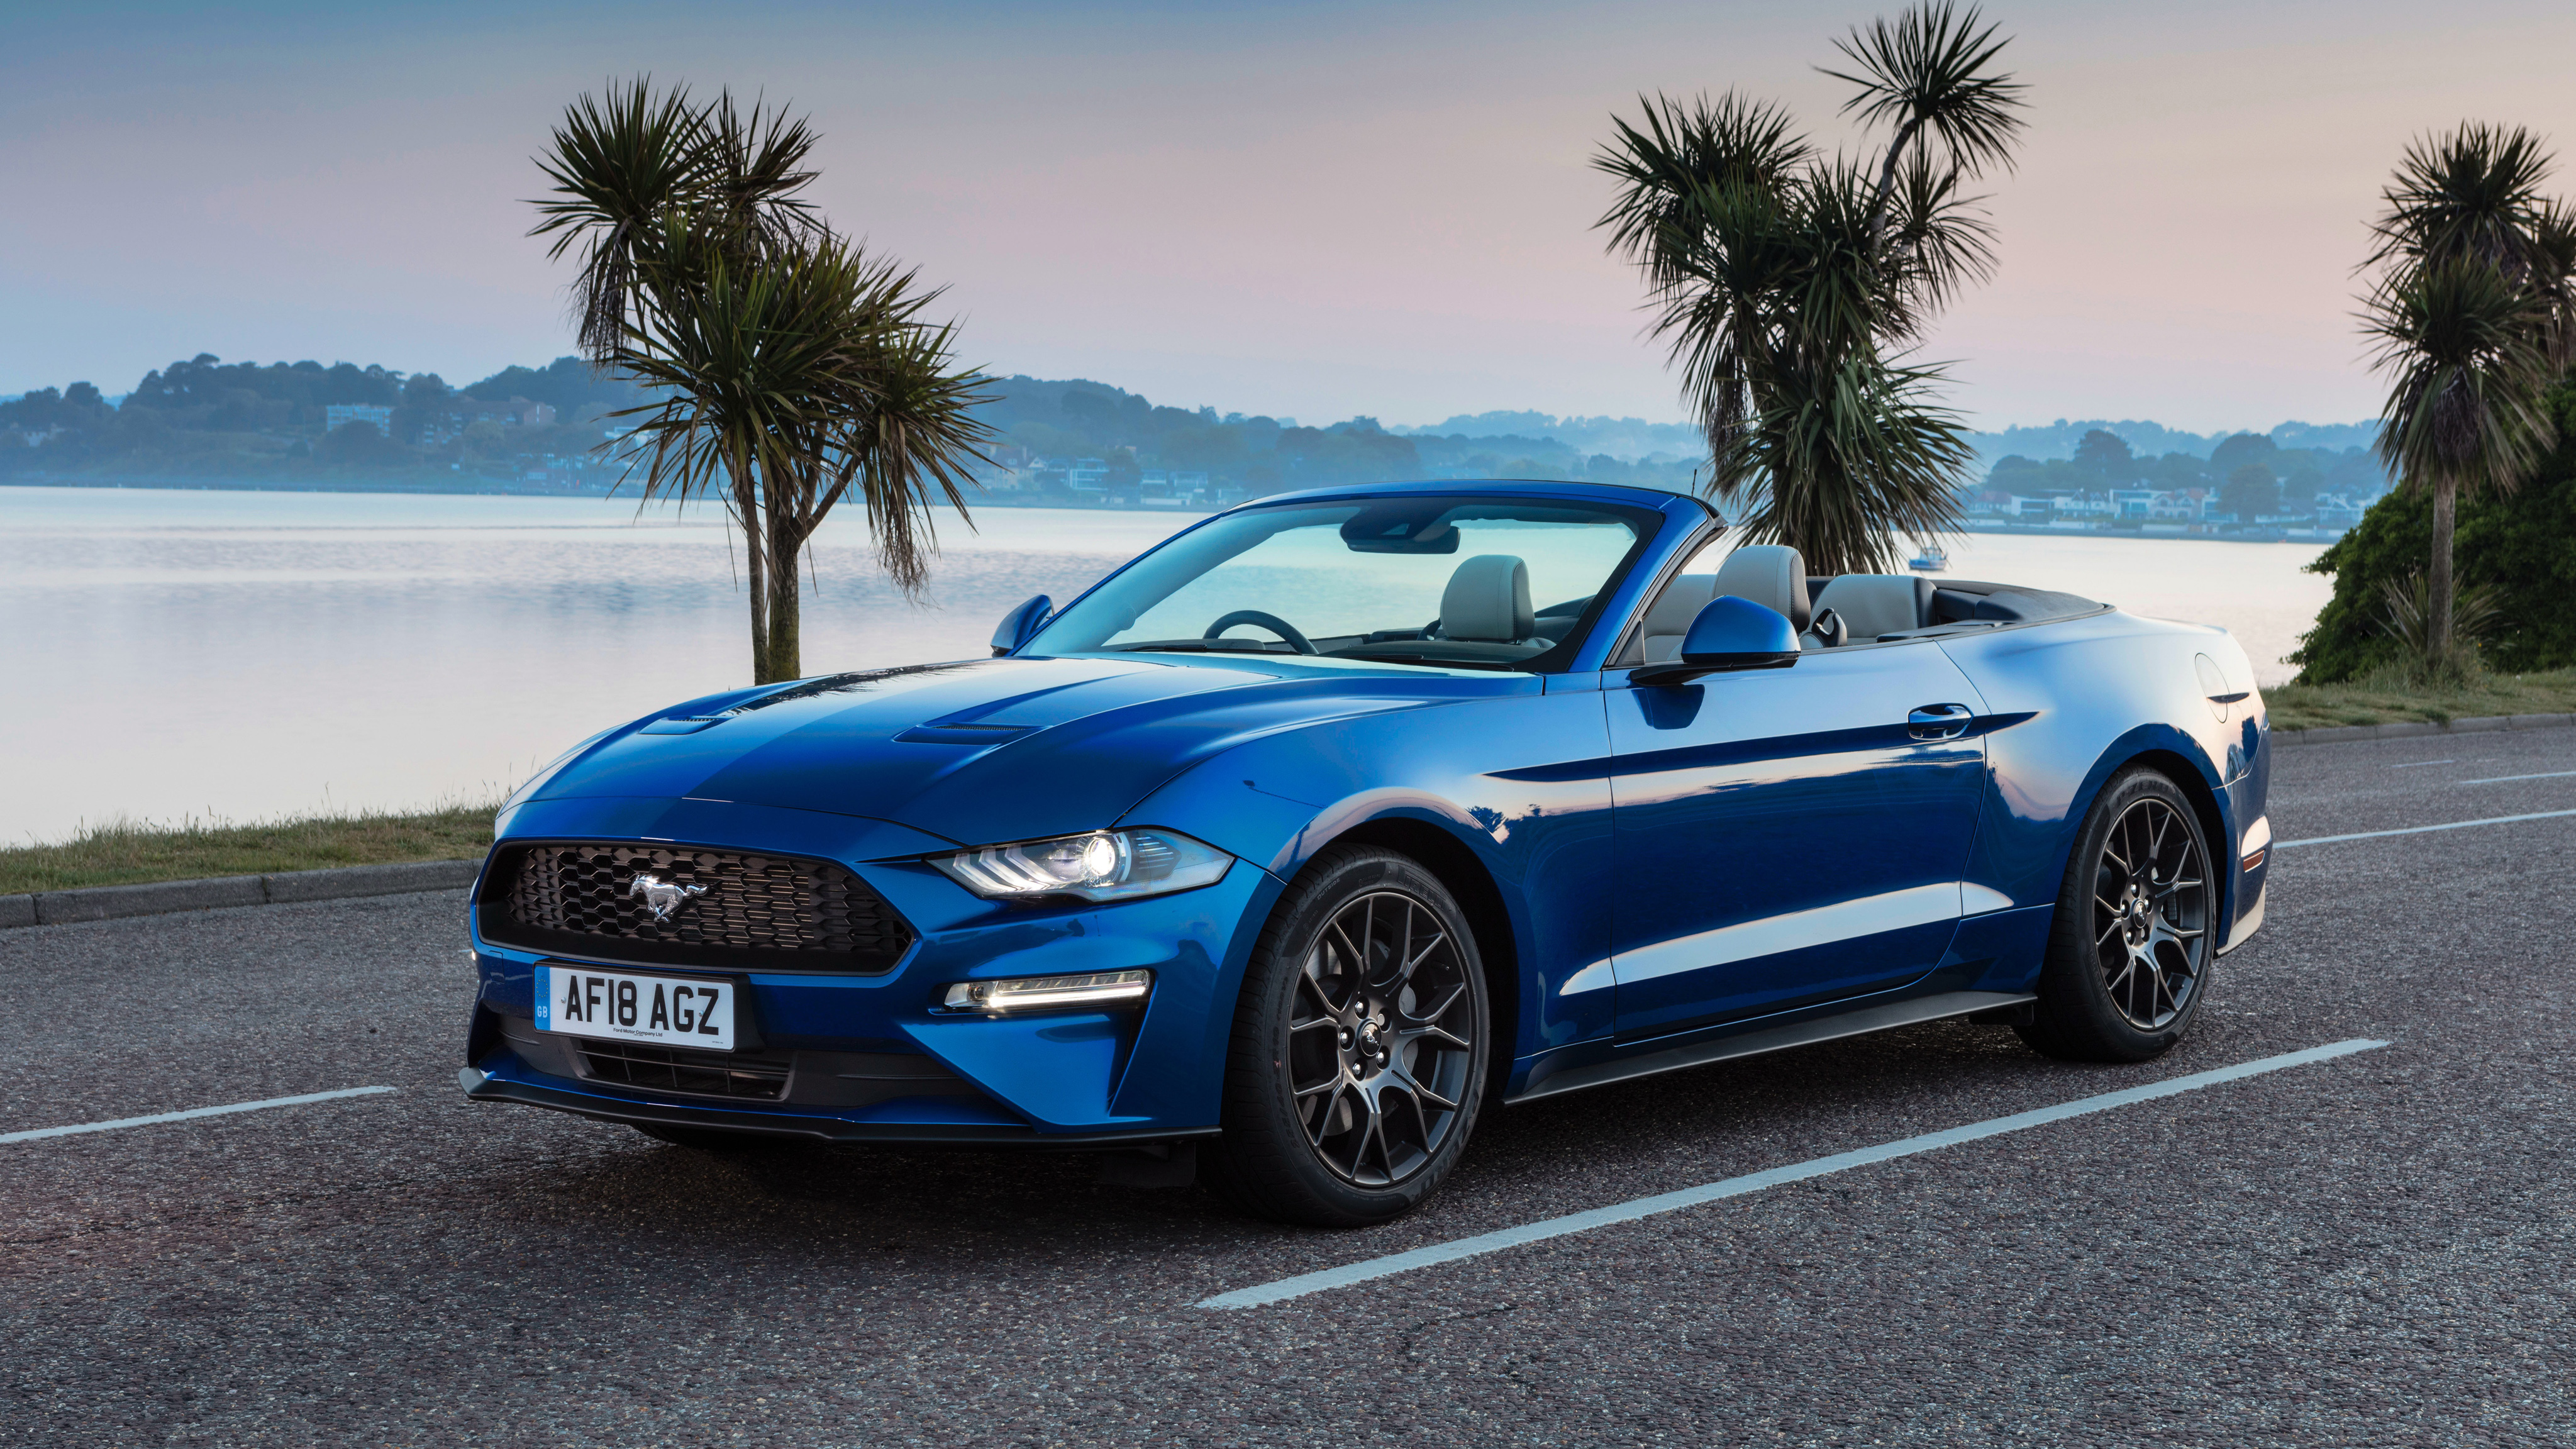 2018 Ford Mustang Ecoboost Convertible 4k Wallpaper Hd Car Wallpapers Id 10420